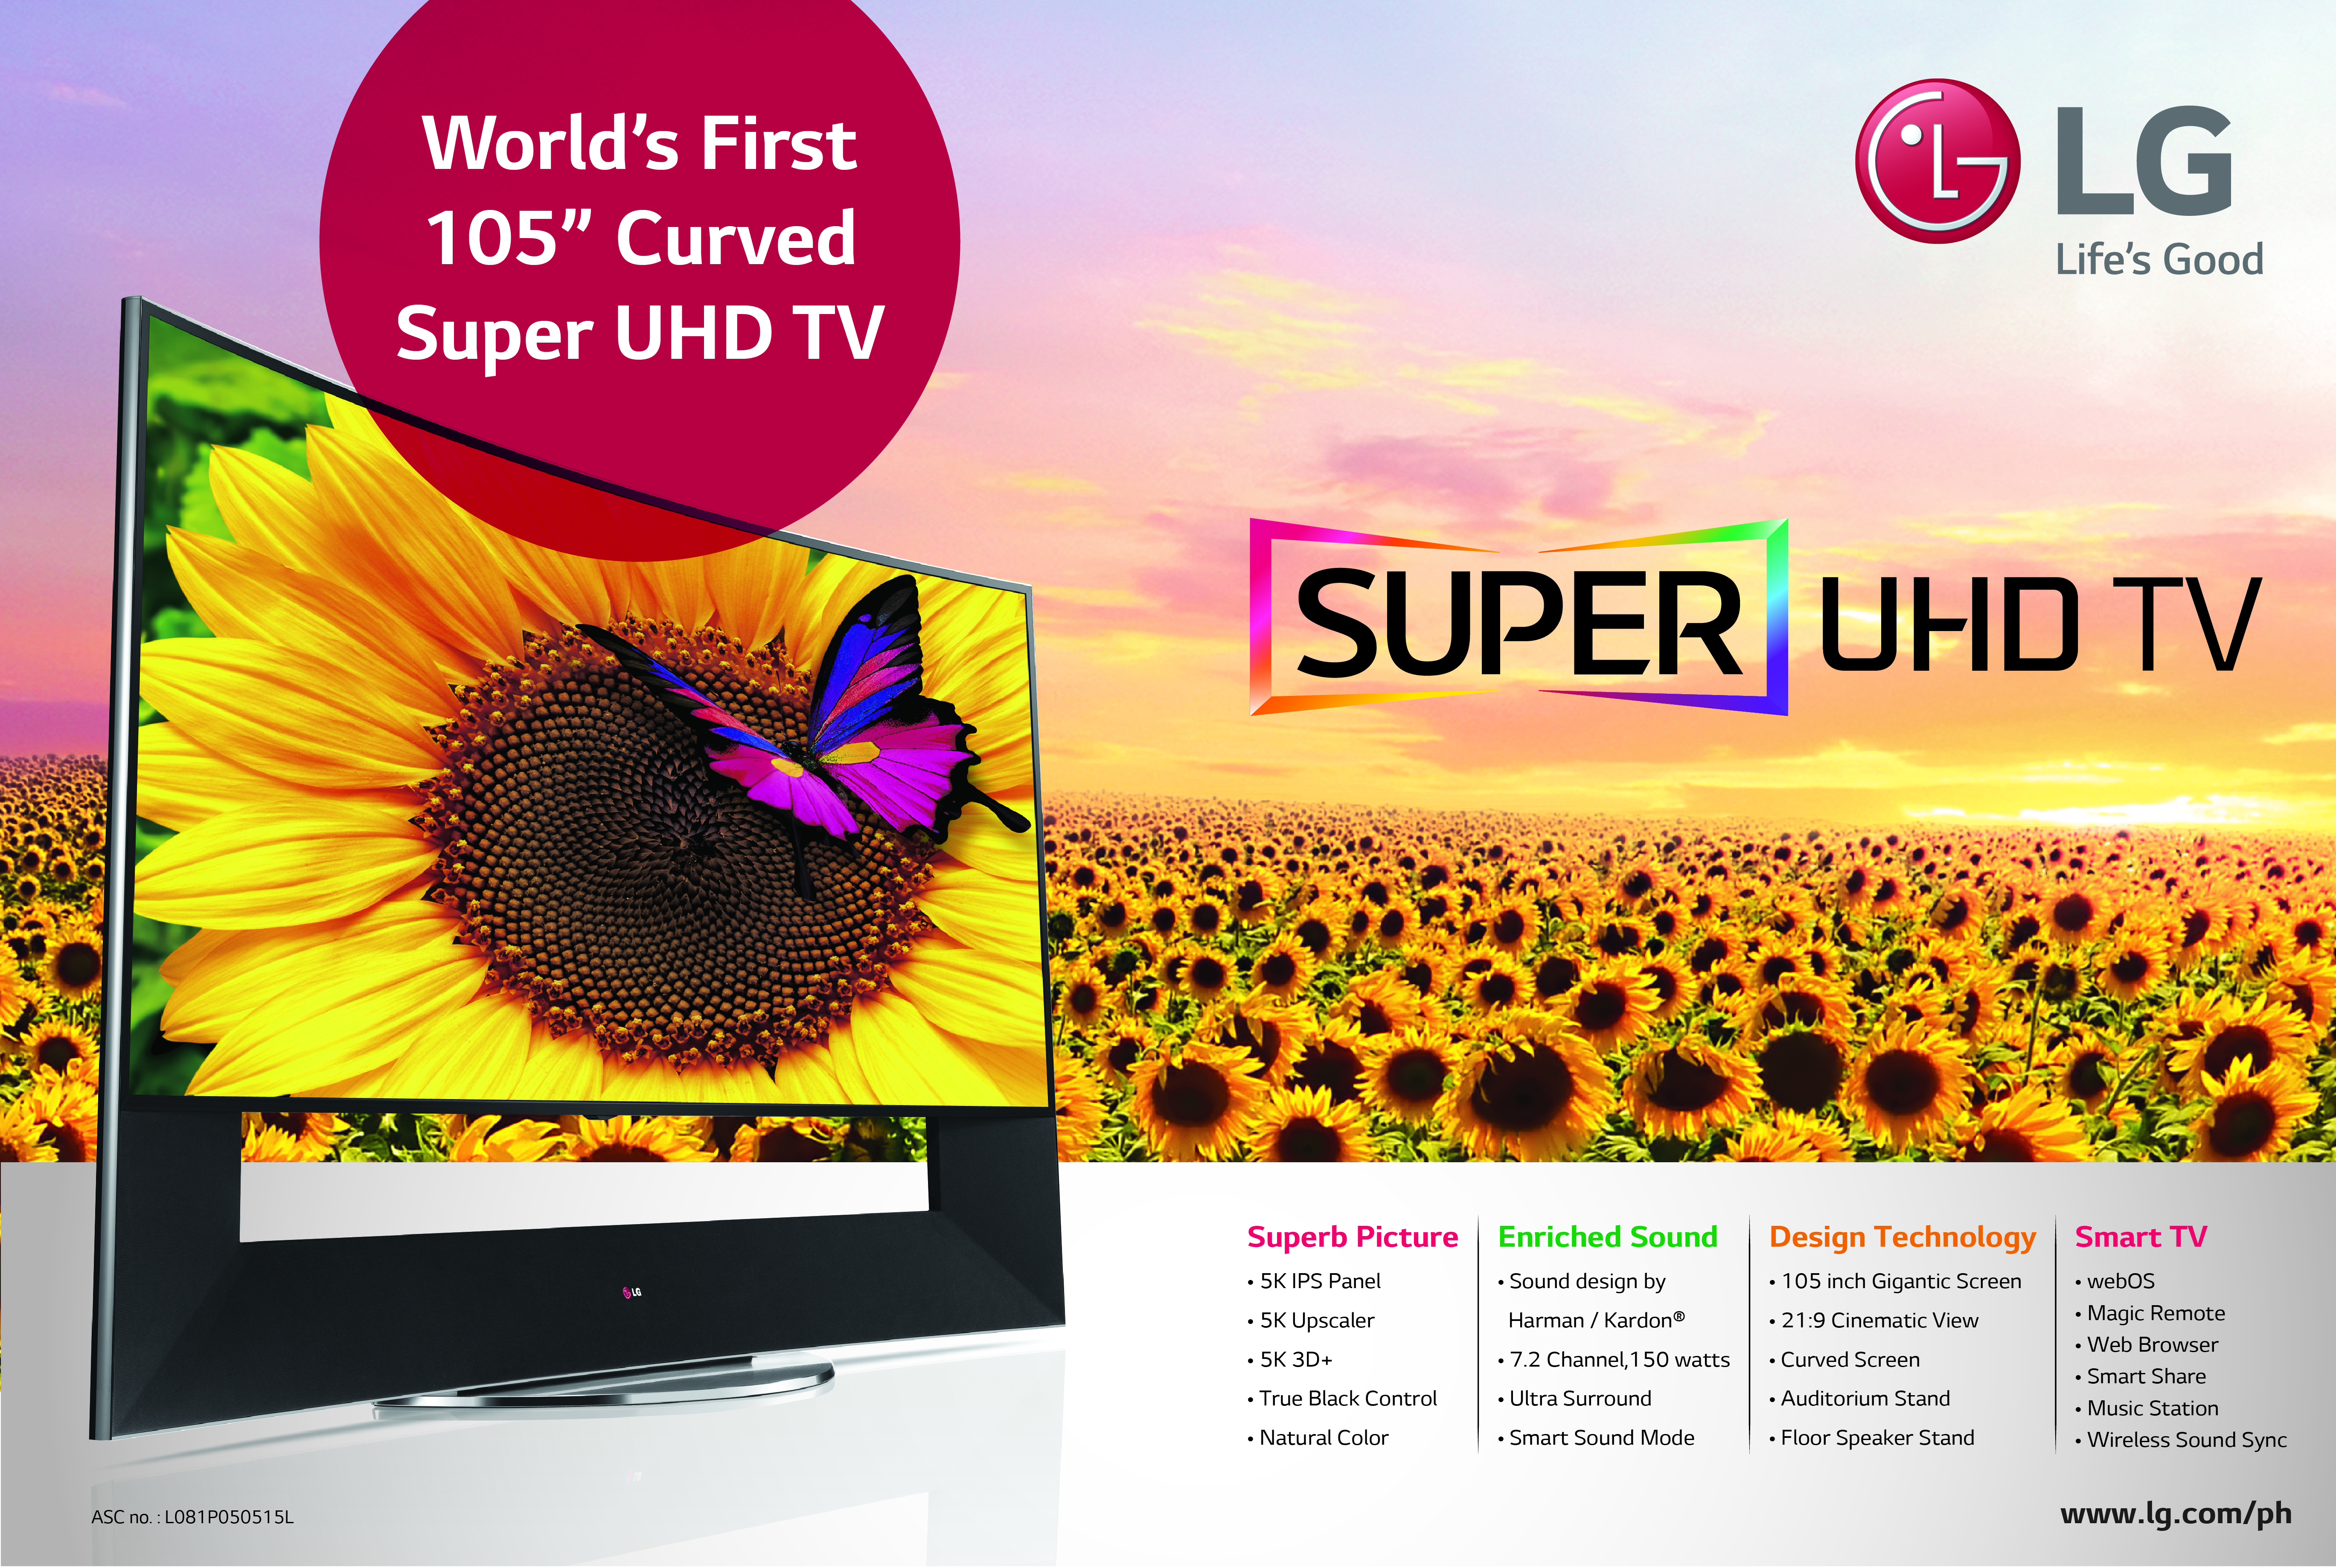 1df634fdfbf The World s First 105-inch Curved Super ULTRA HD TV